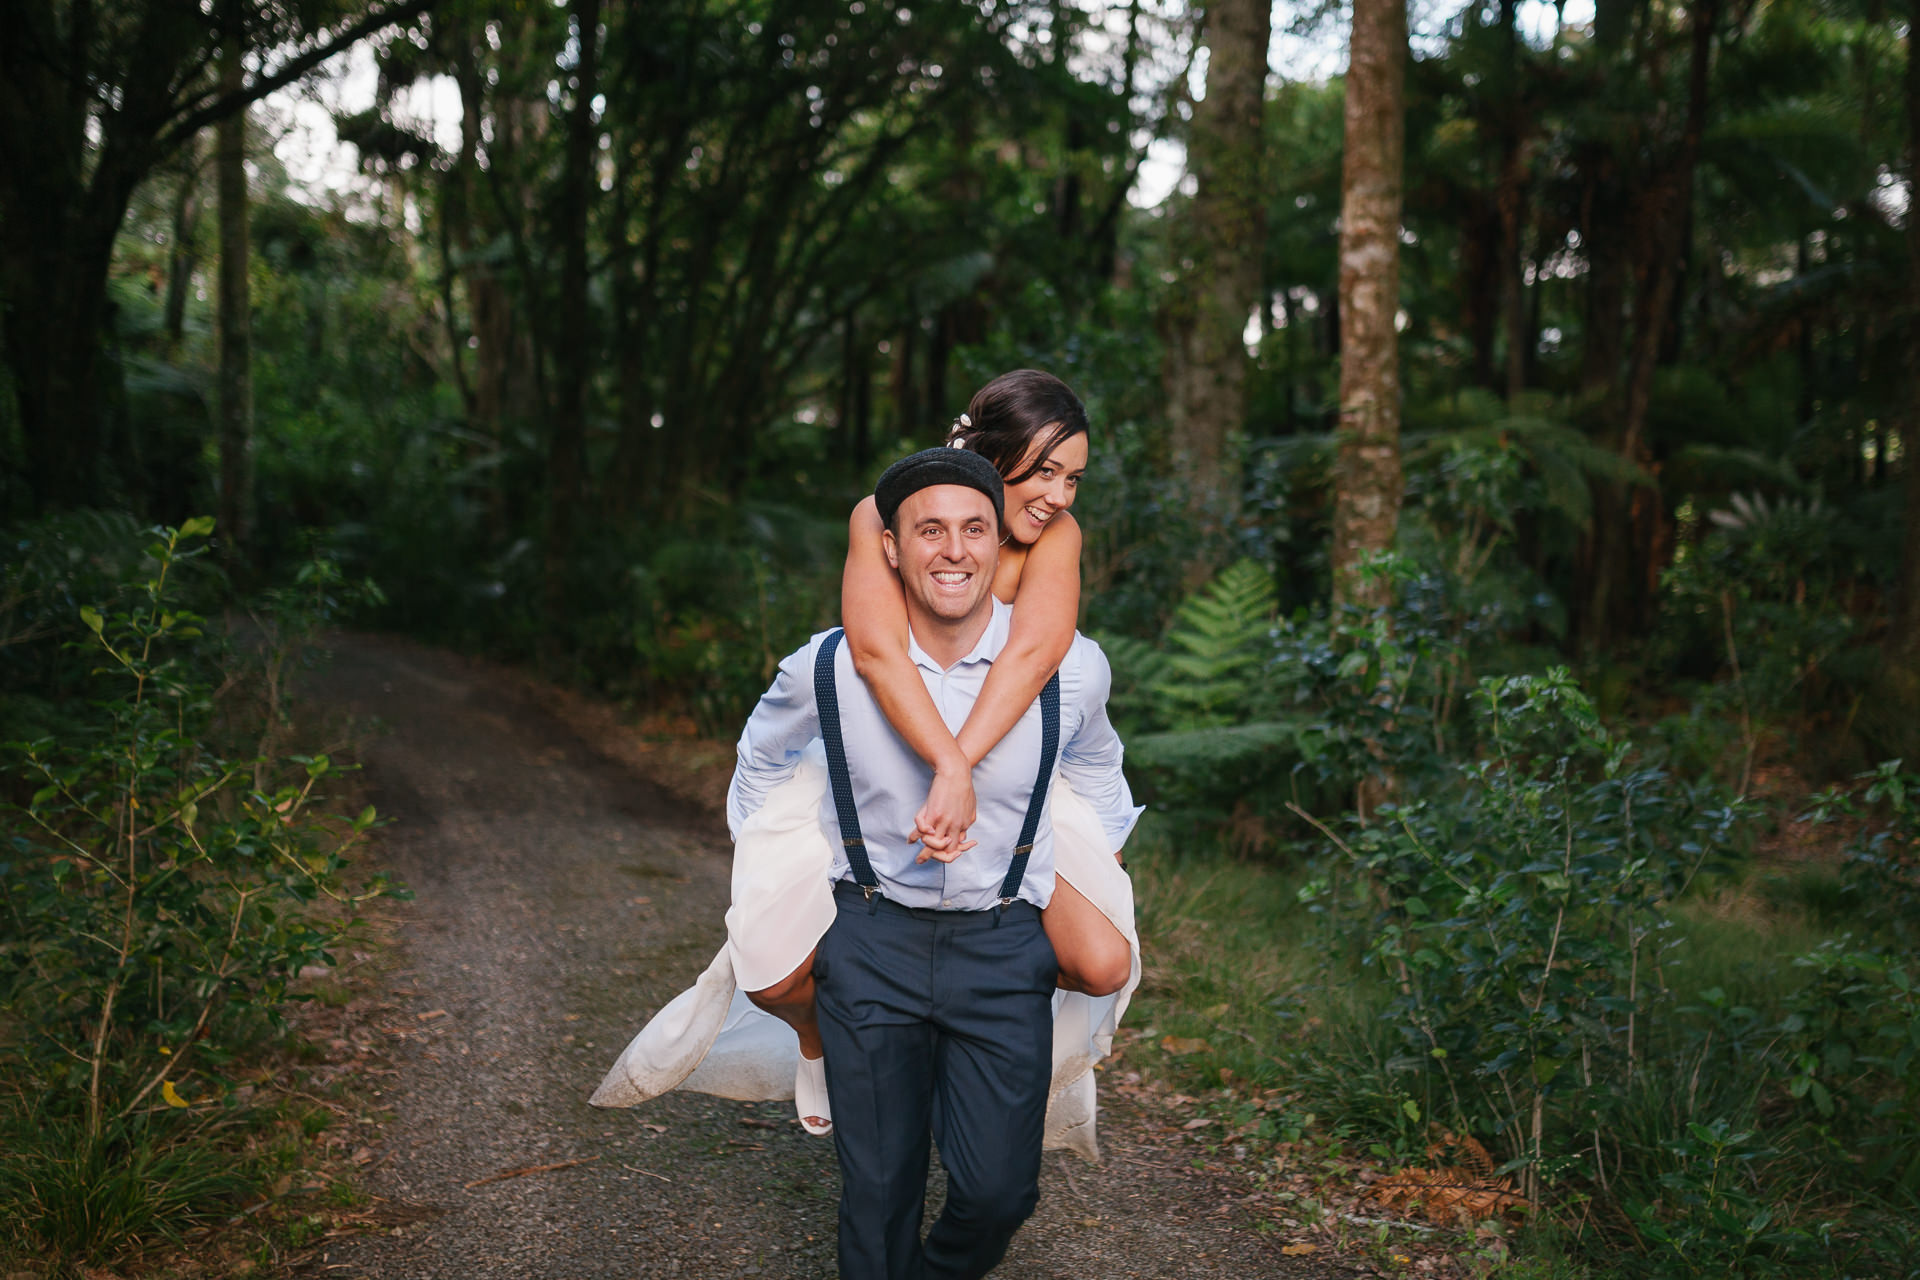 The_Official_Photographers_shannon-Noel-Pirongia-forest-park-wedding_MG_1179